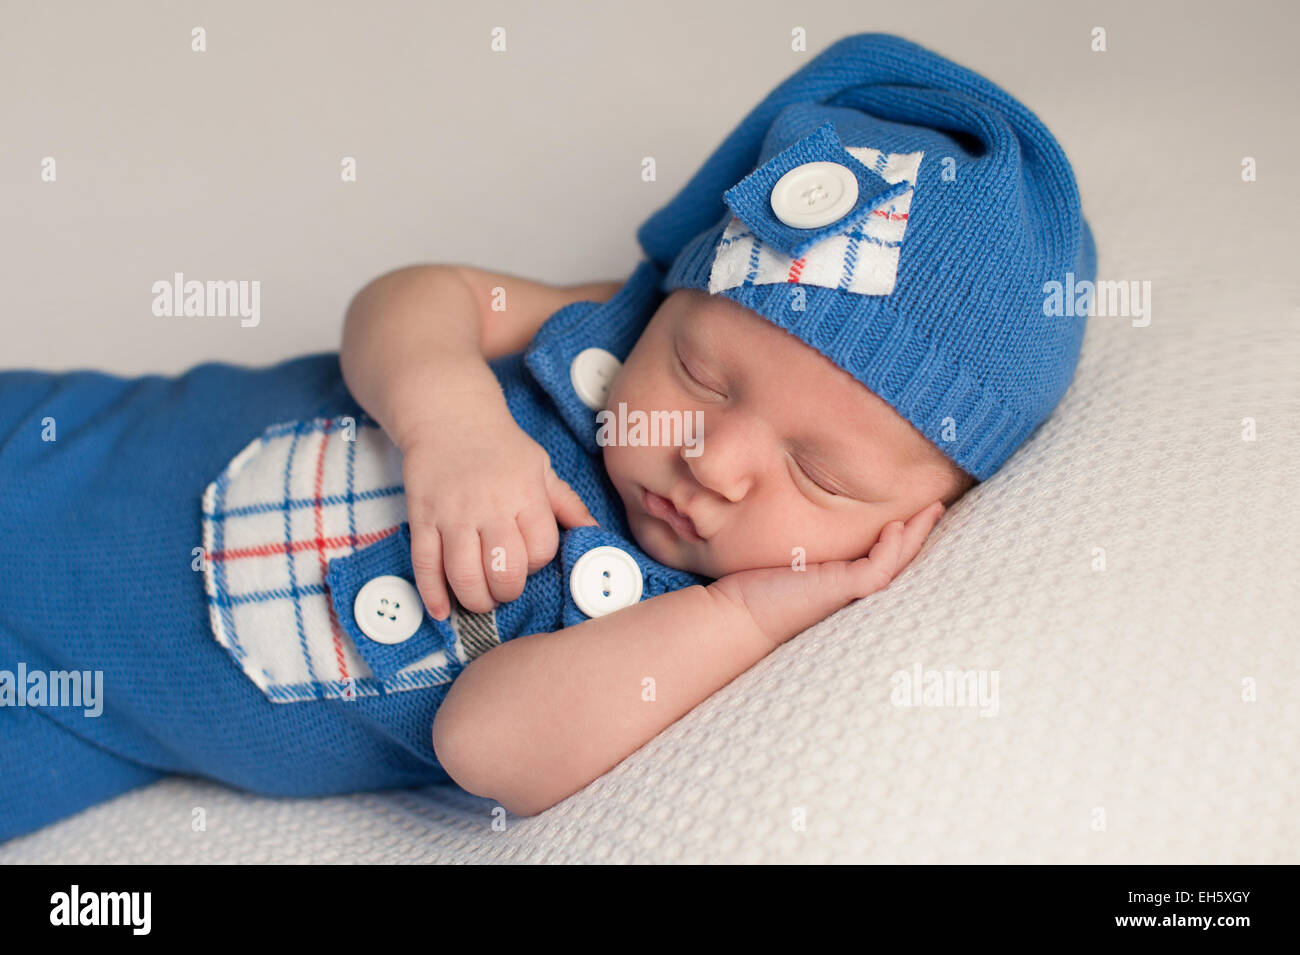 d0365af8d1f1 Sleeping Baby Boy Wearing an Up-Cycled Romper and Cap Stock Photo ...